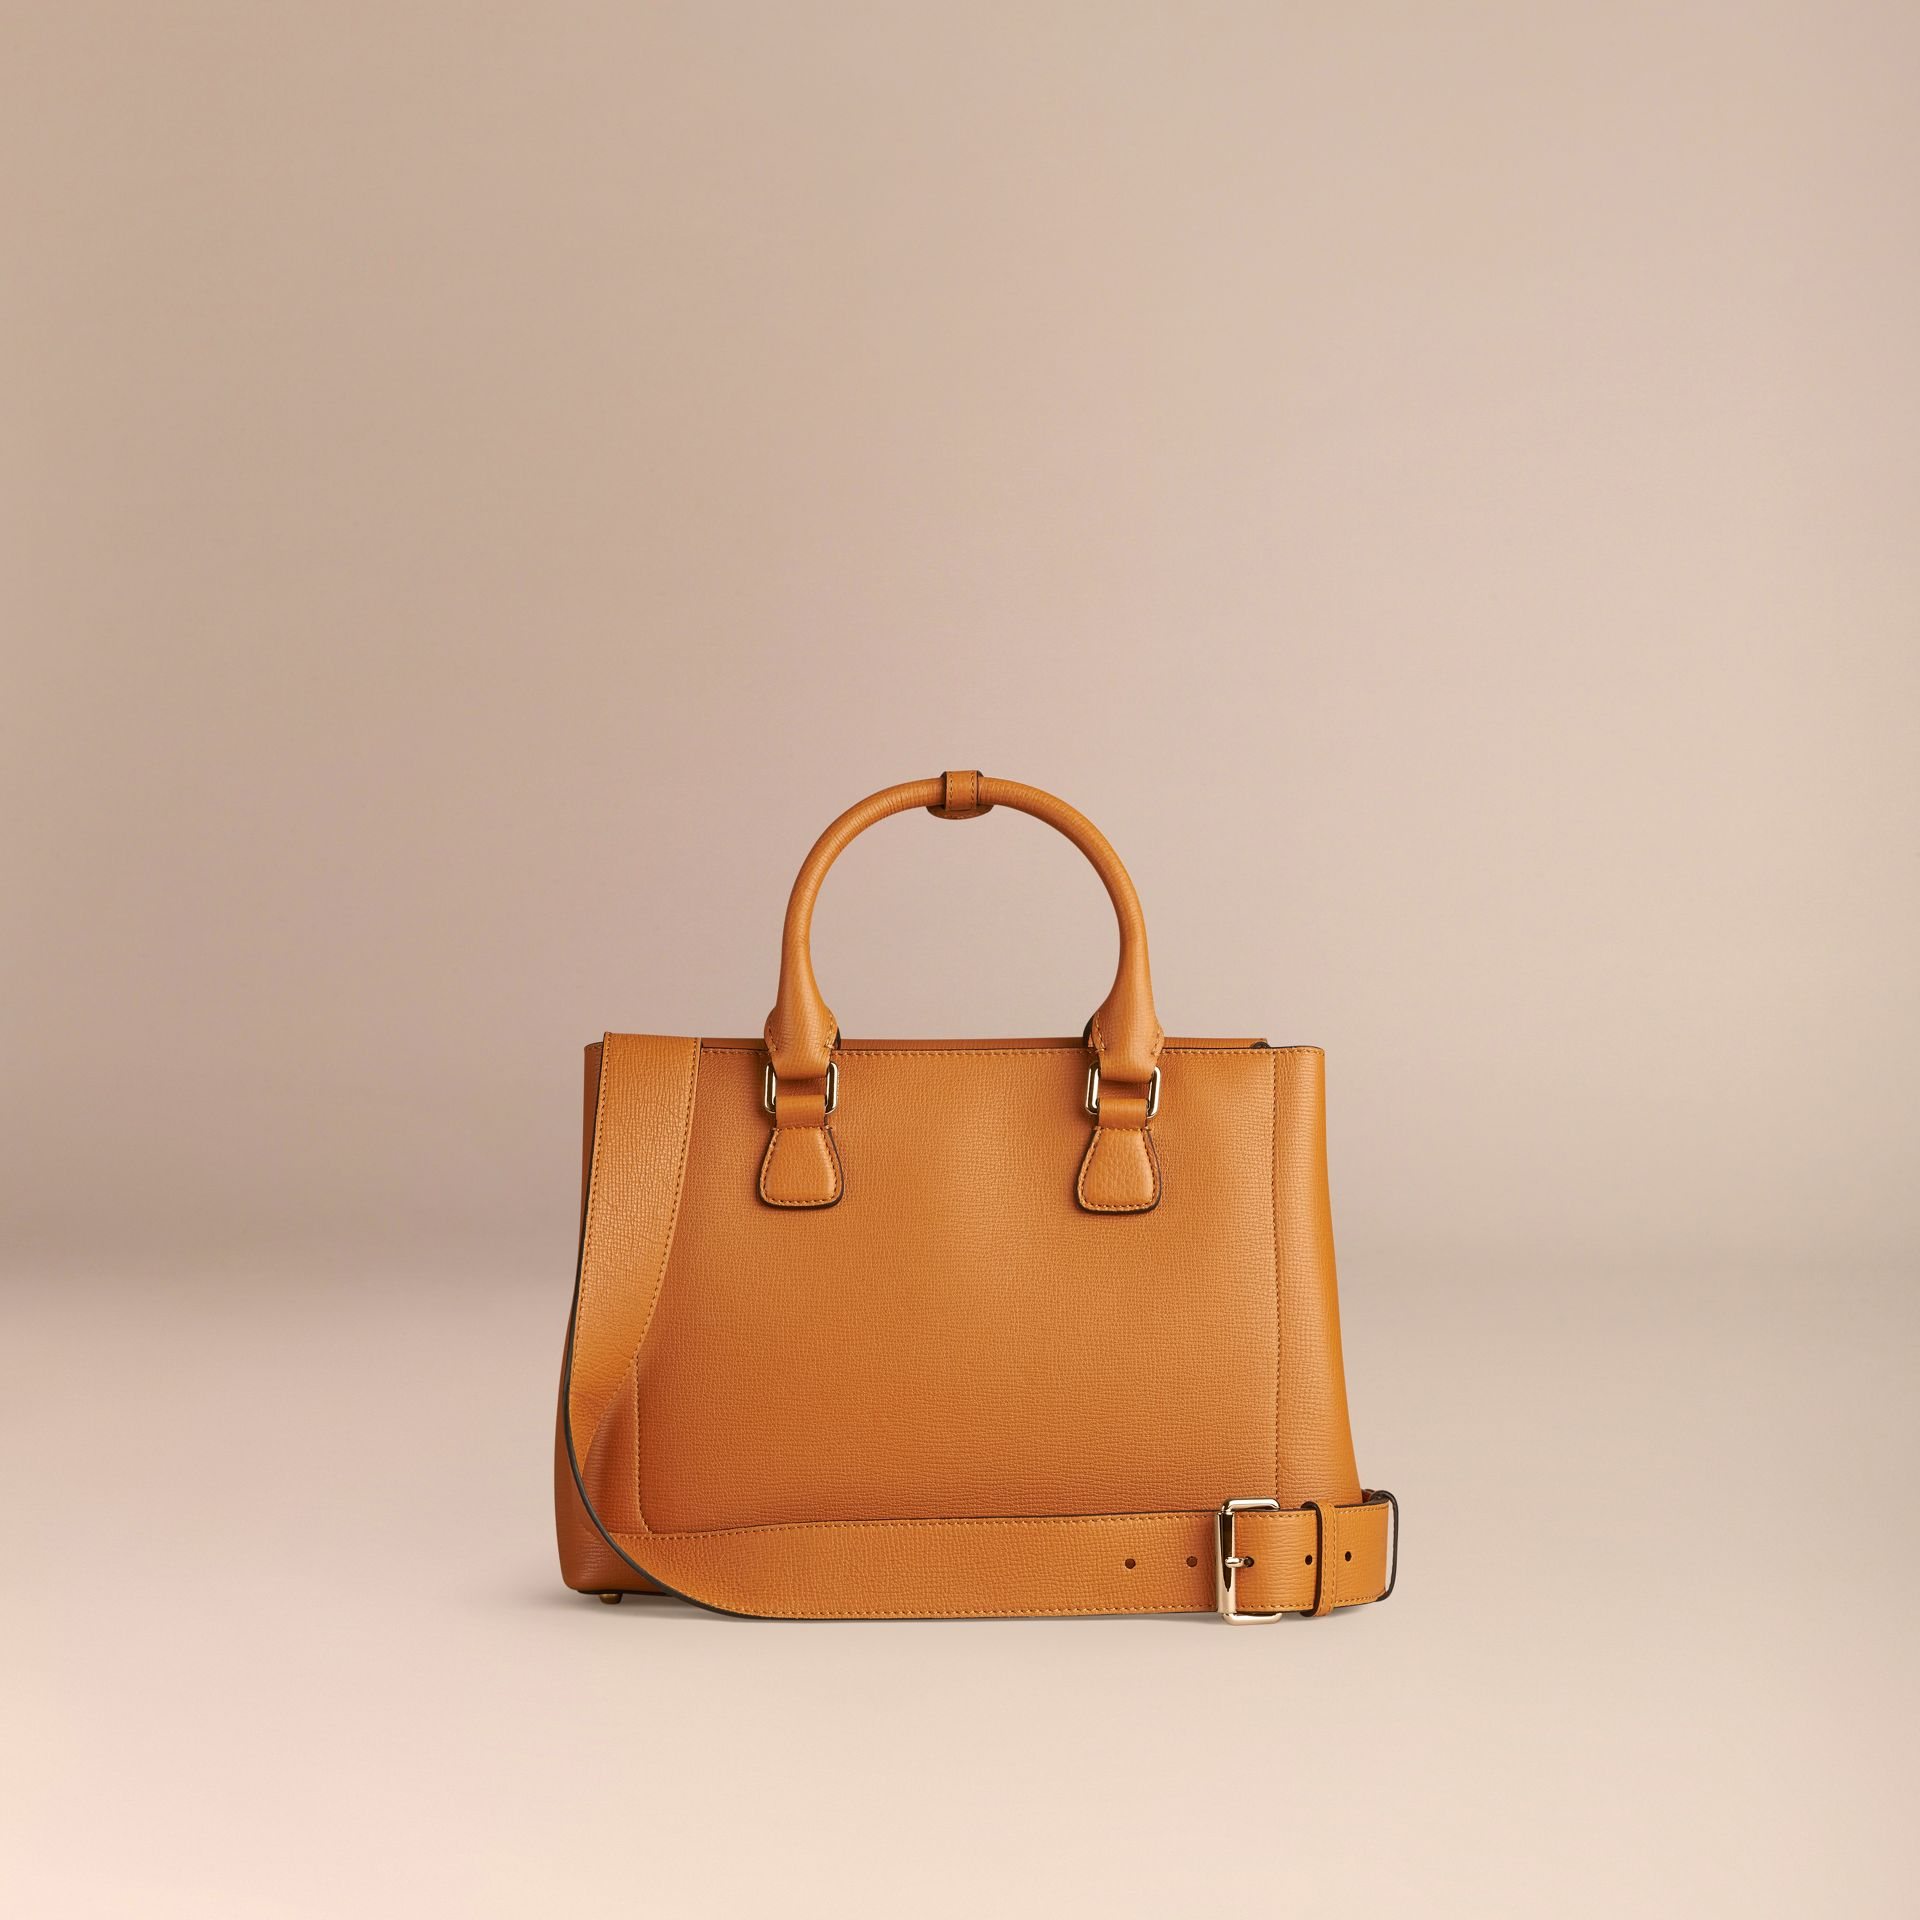 Cognac The Medium Saddle Bag in Grainy Bonded Leather Cognac - gallery image 4